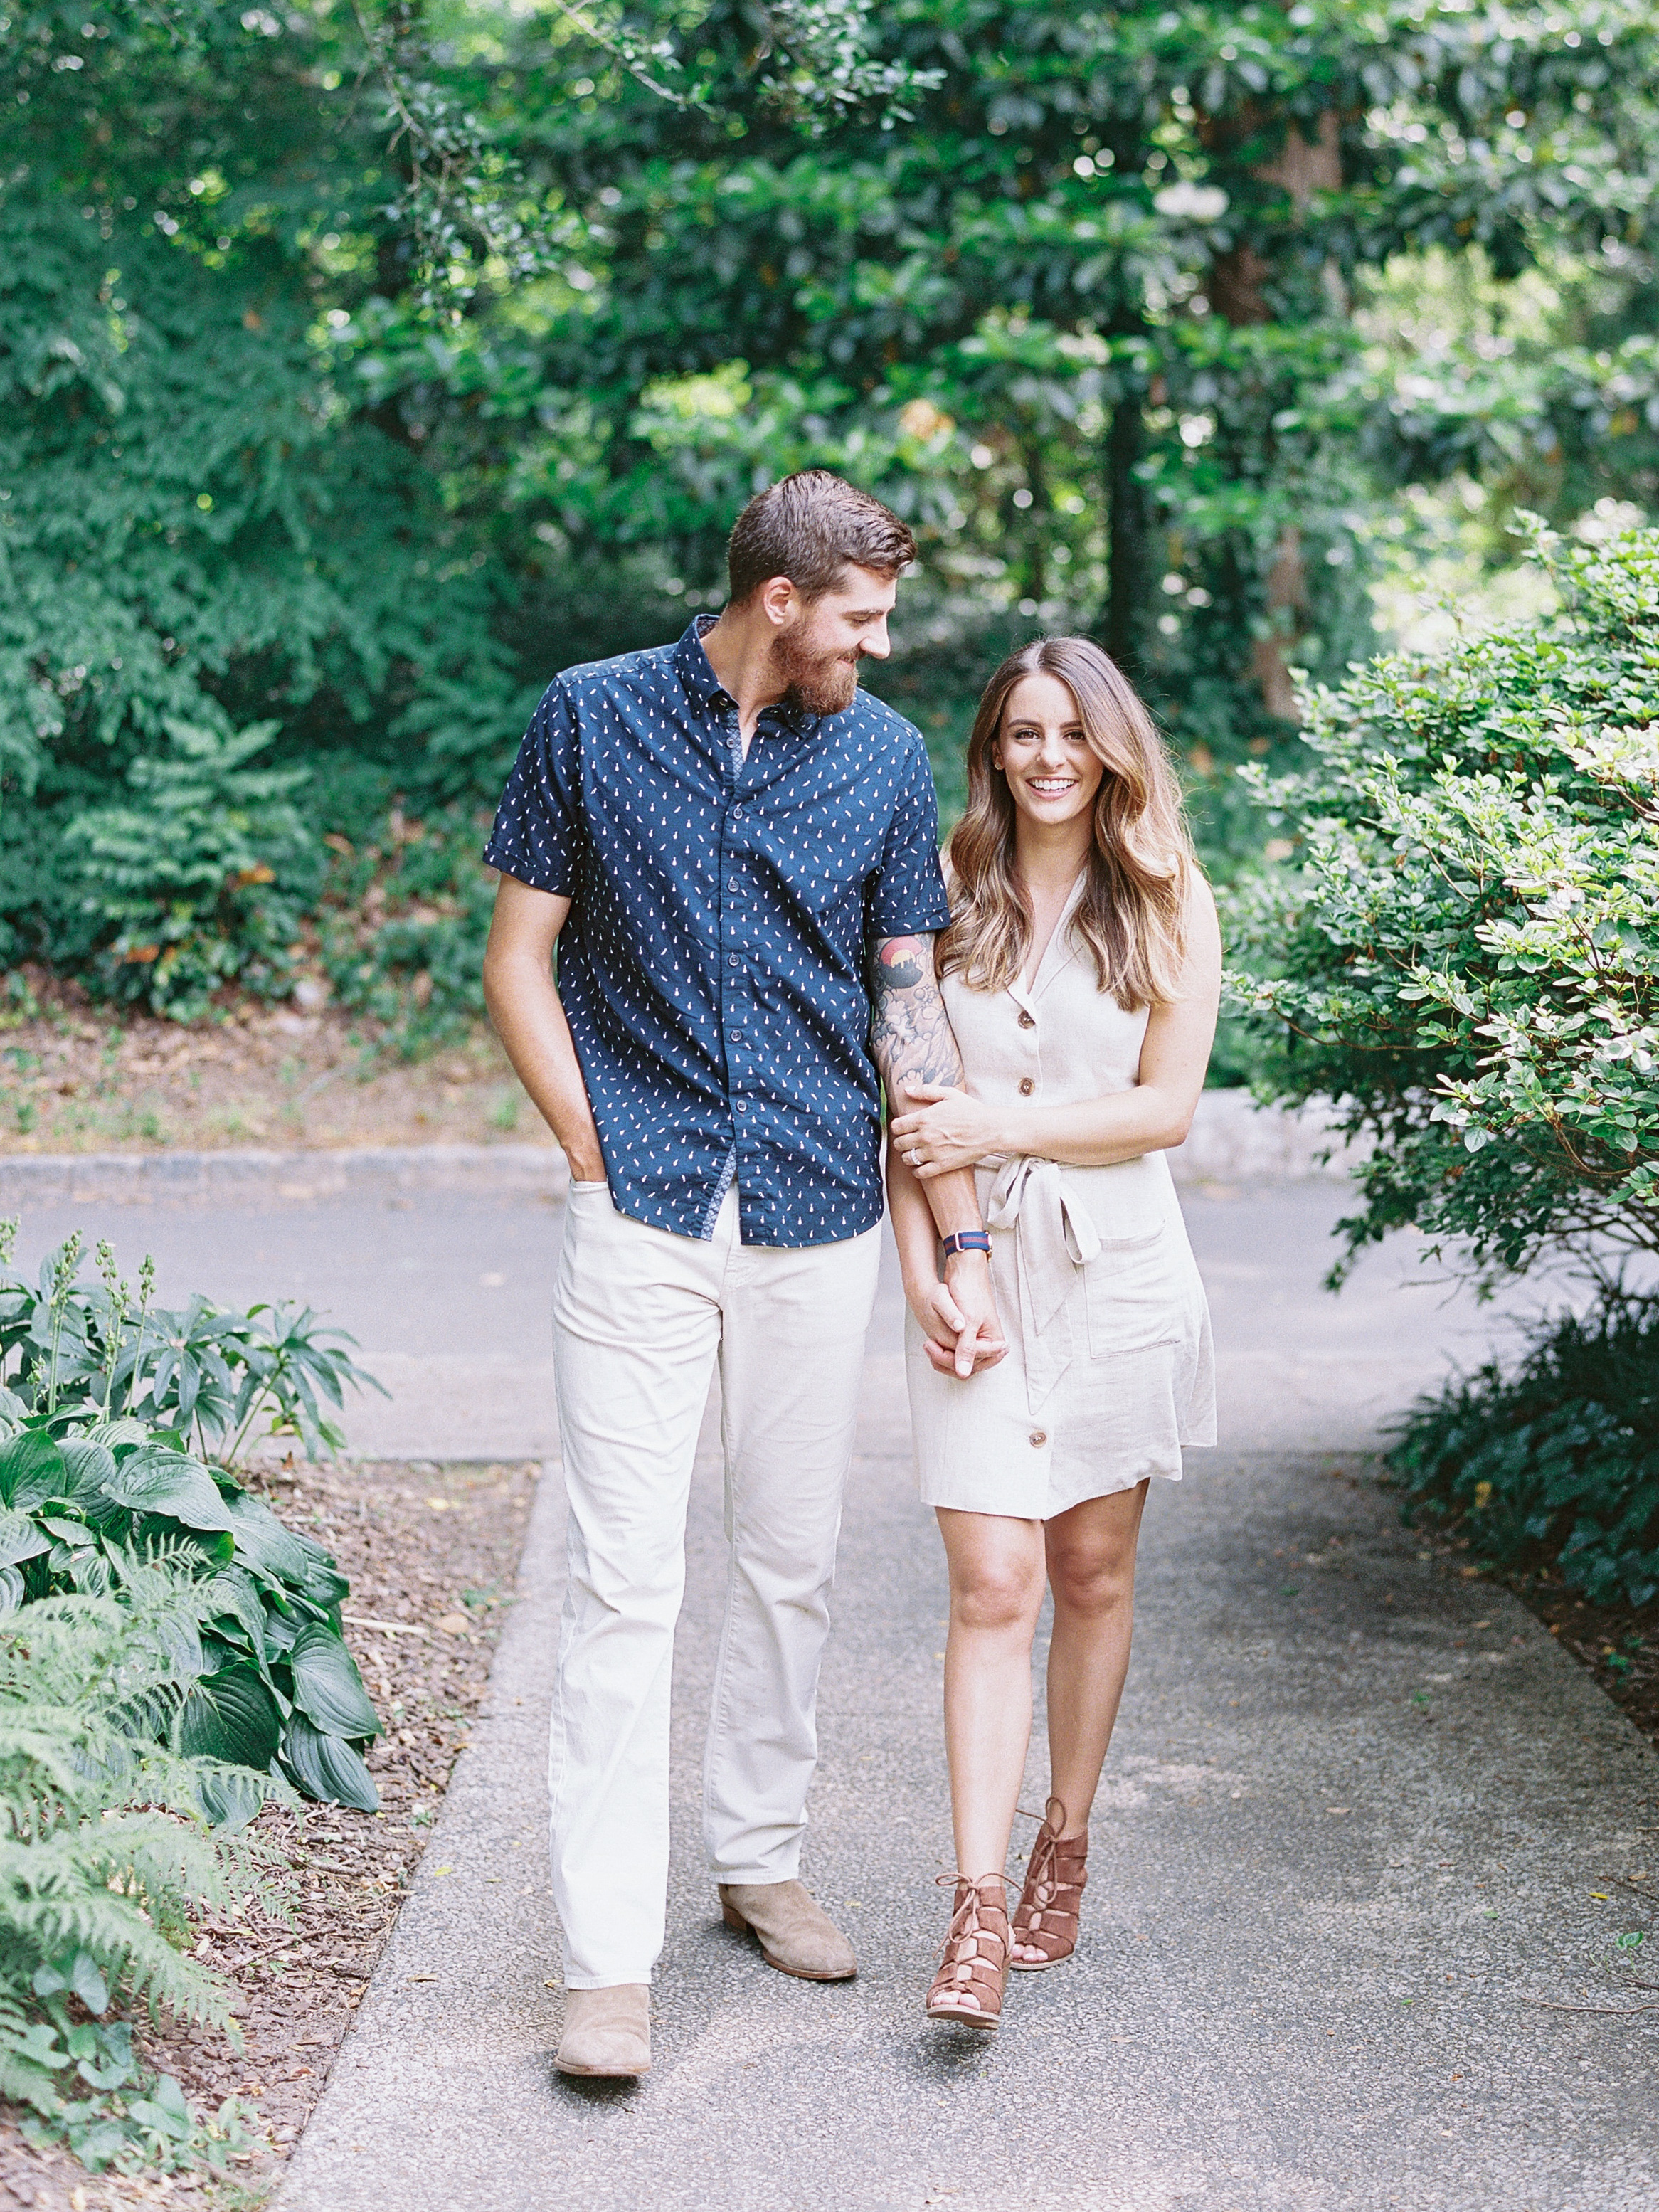 Cator-woolford-gardens-family-photos-atlanta-film-wedding-photographer-15.jpg